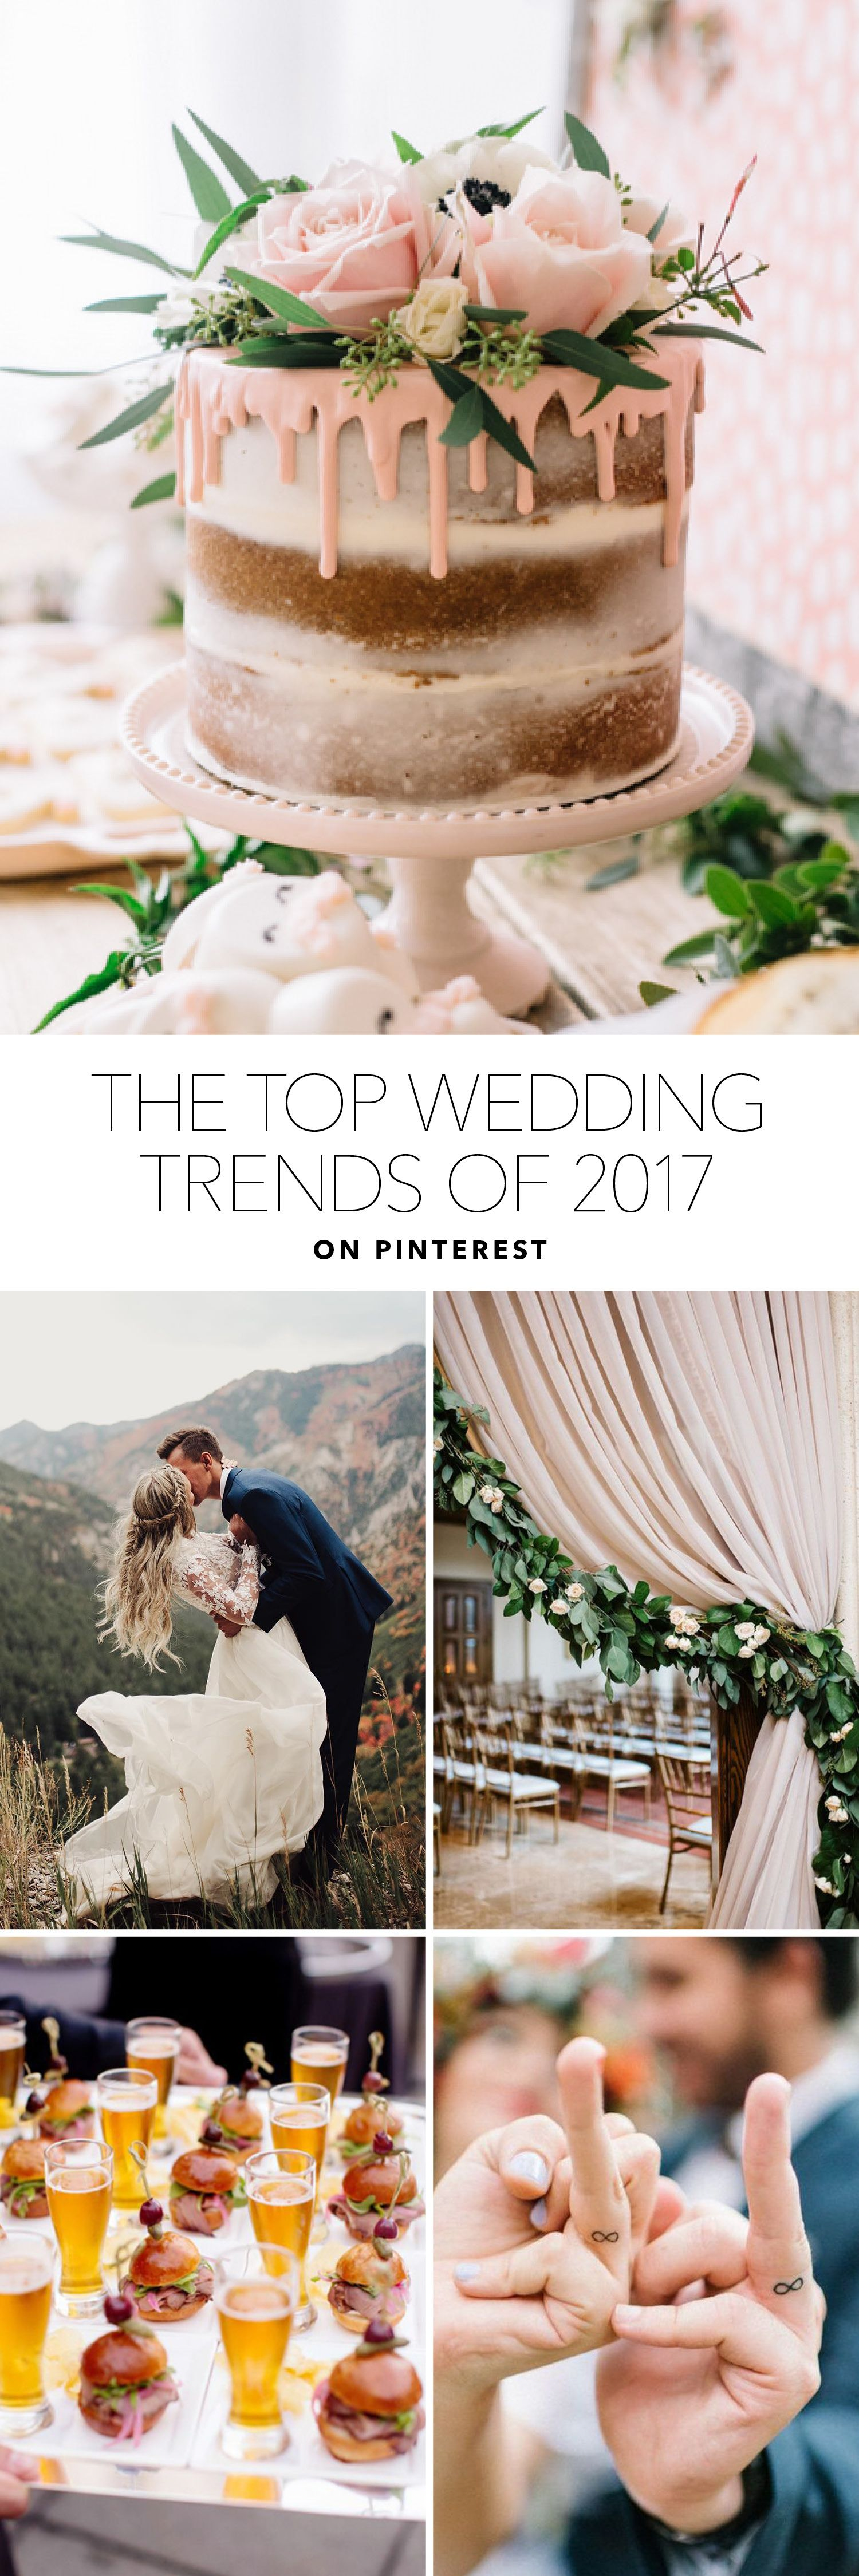 Wedding Trends 2017.The Biggest Wedding Trends Of 2017 According To Pinterest